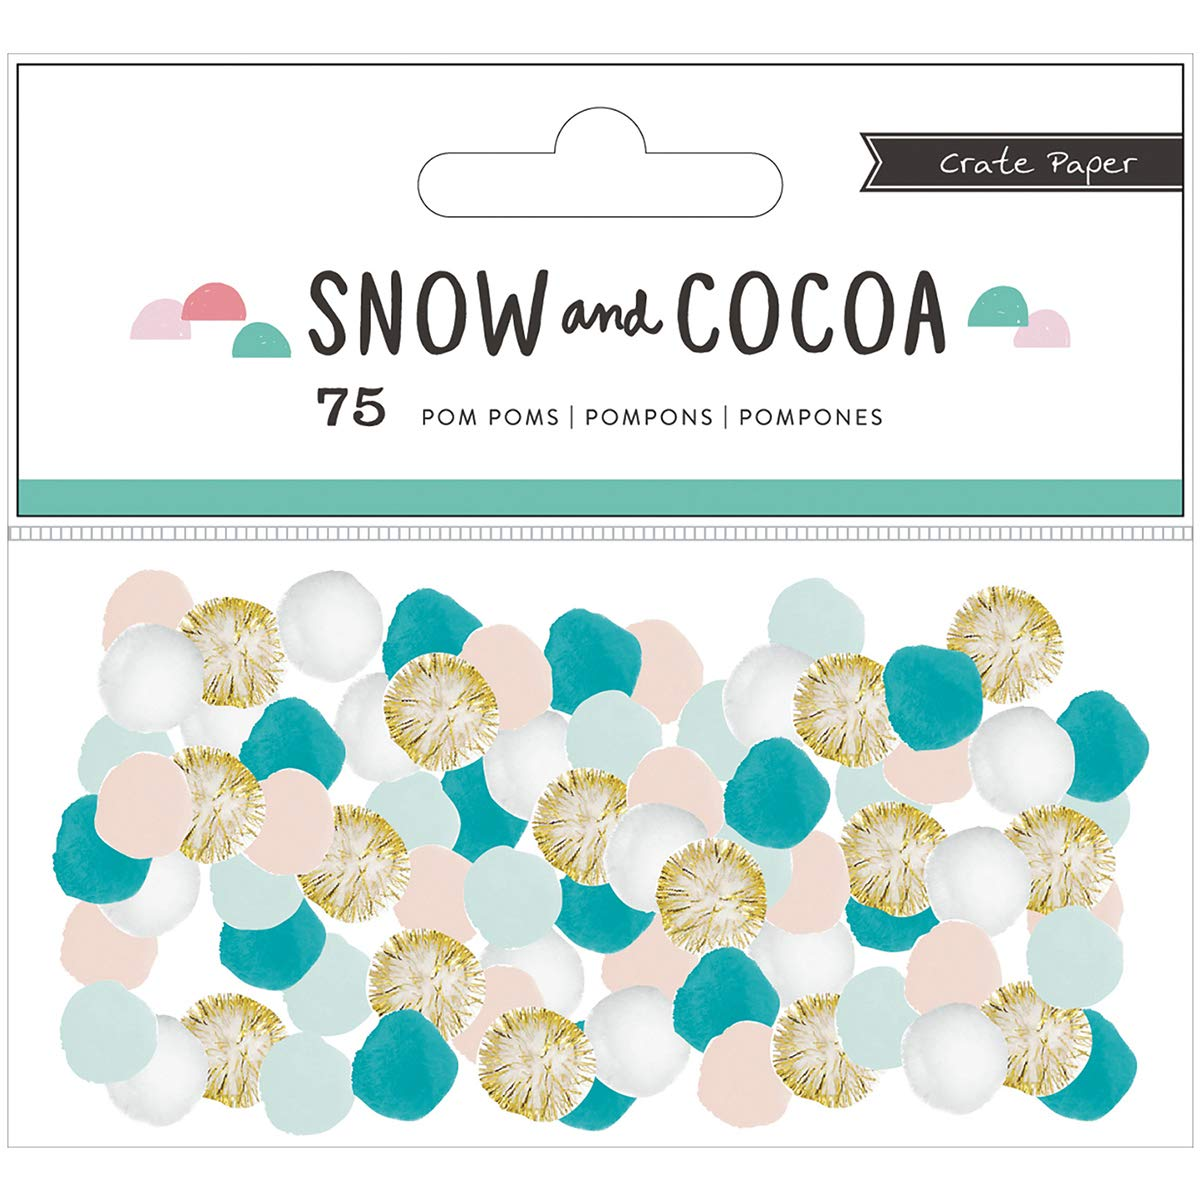 Crate Paper Snow and Cocoa Collection Pom Poms (8 Pack)